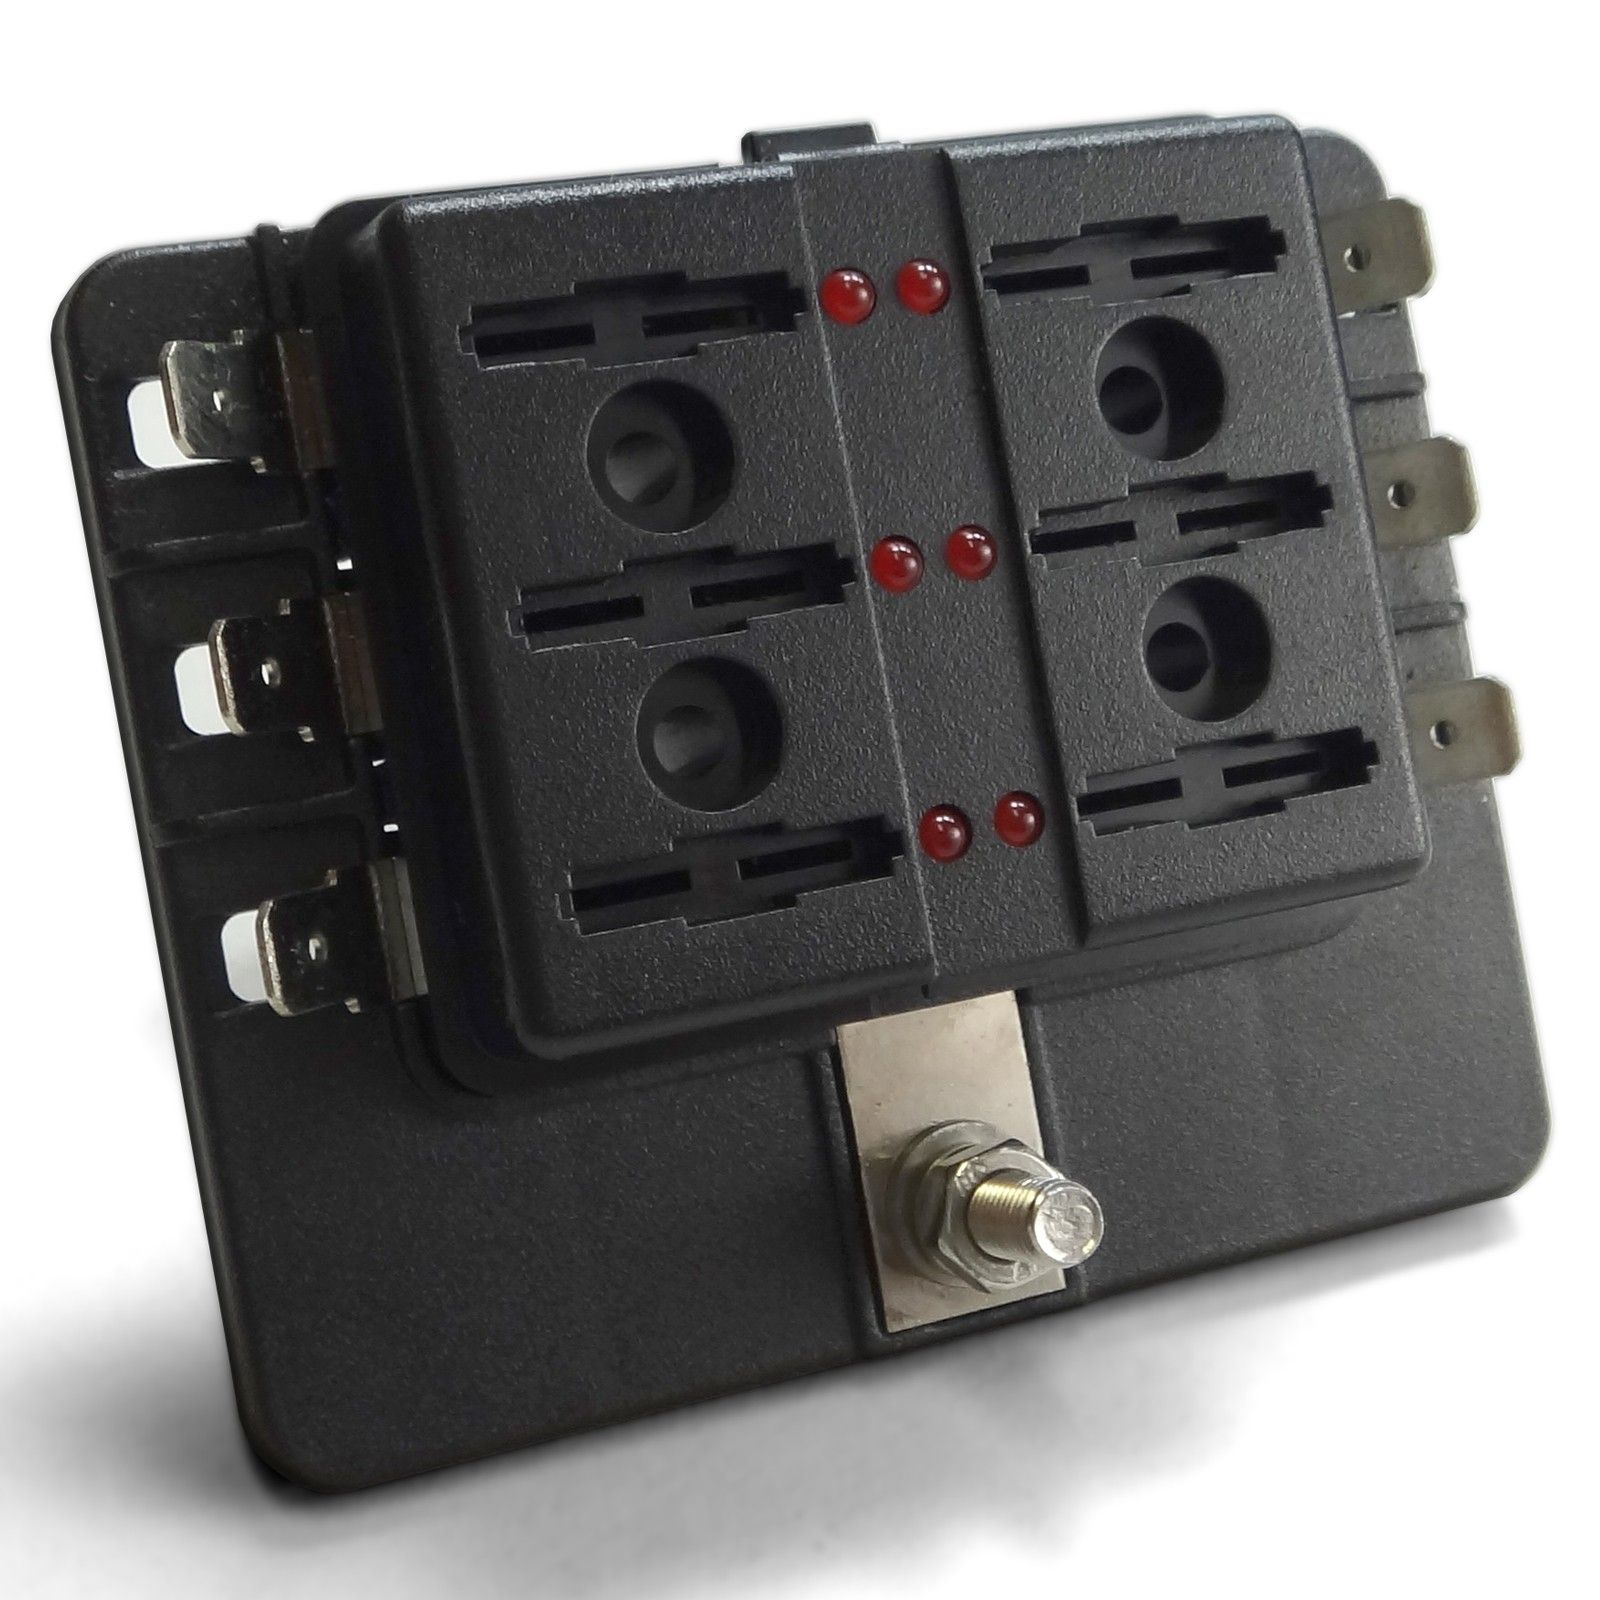 Universal 6 Way Covered 12v Circuit Blade Fuse Box With Led Indicators And Accessories